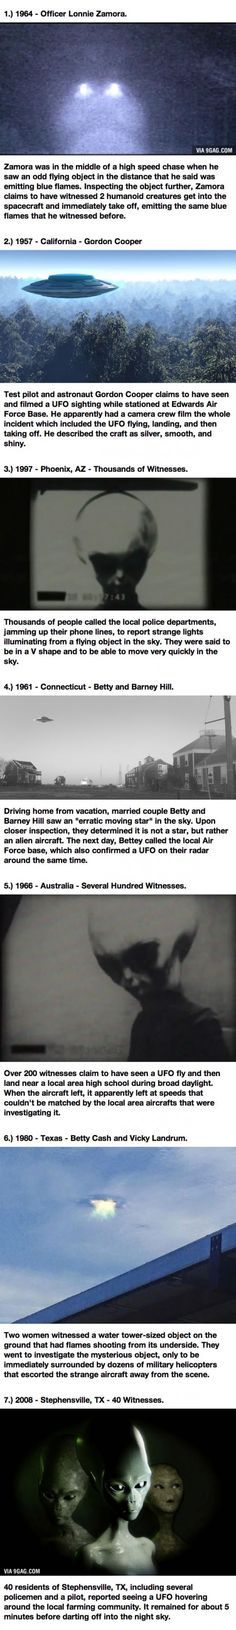 These Are The Most Believable Alien Encounter Stories You've Ever Heard